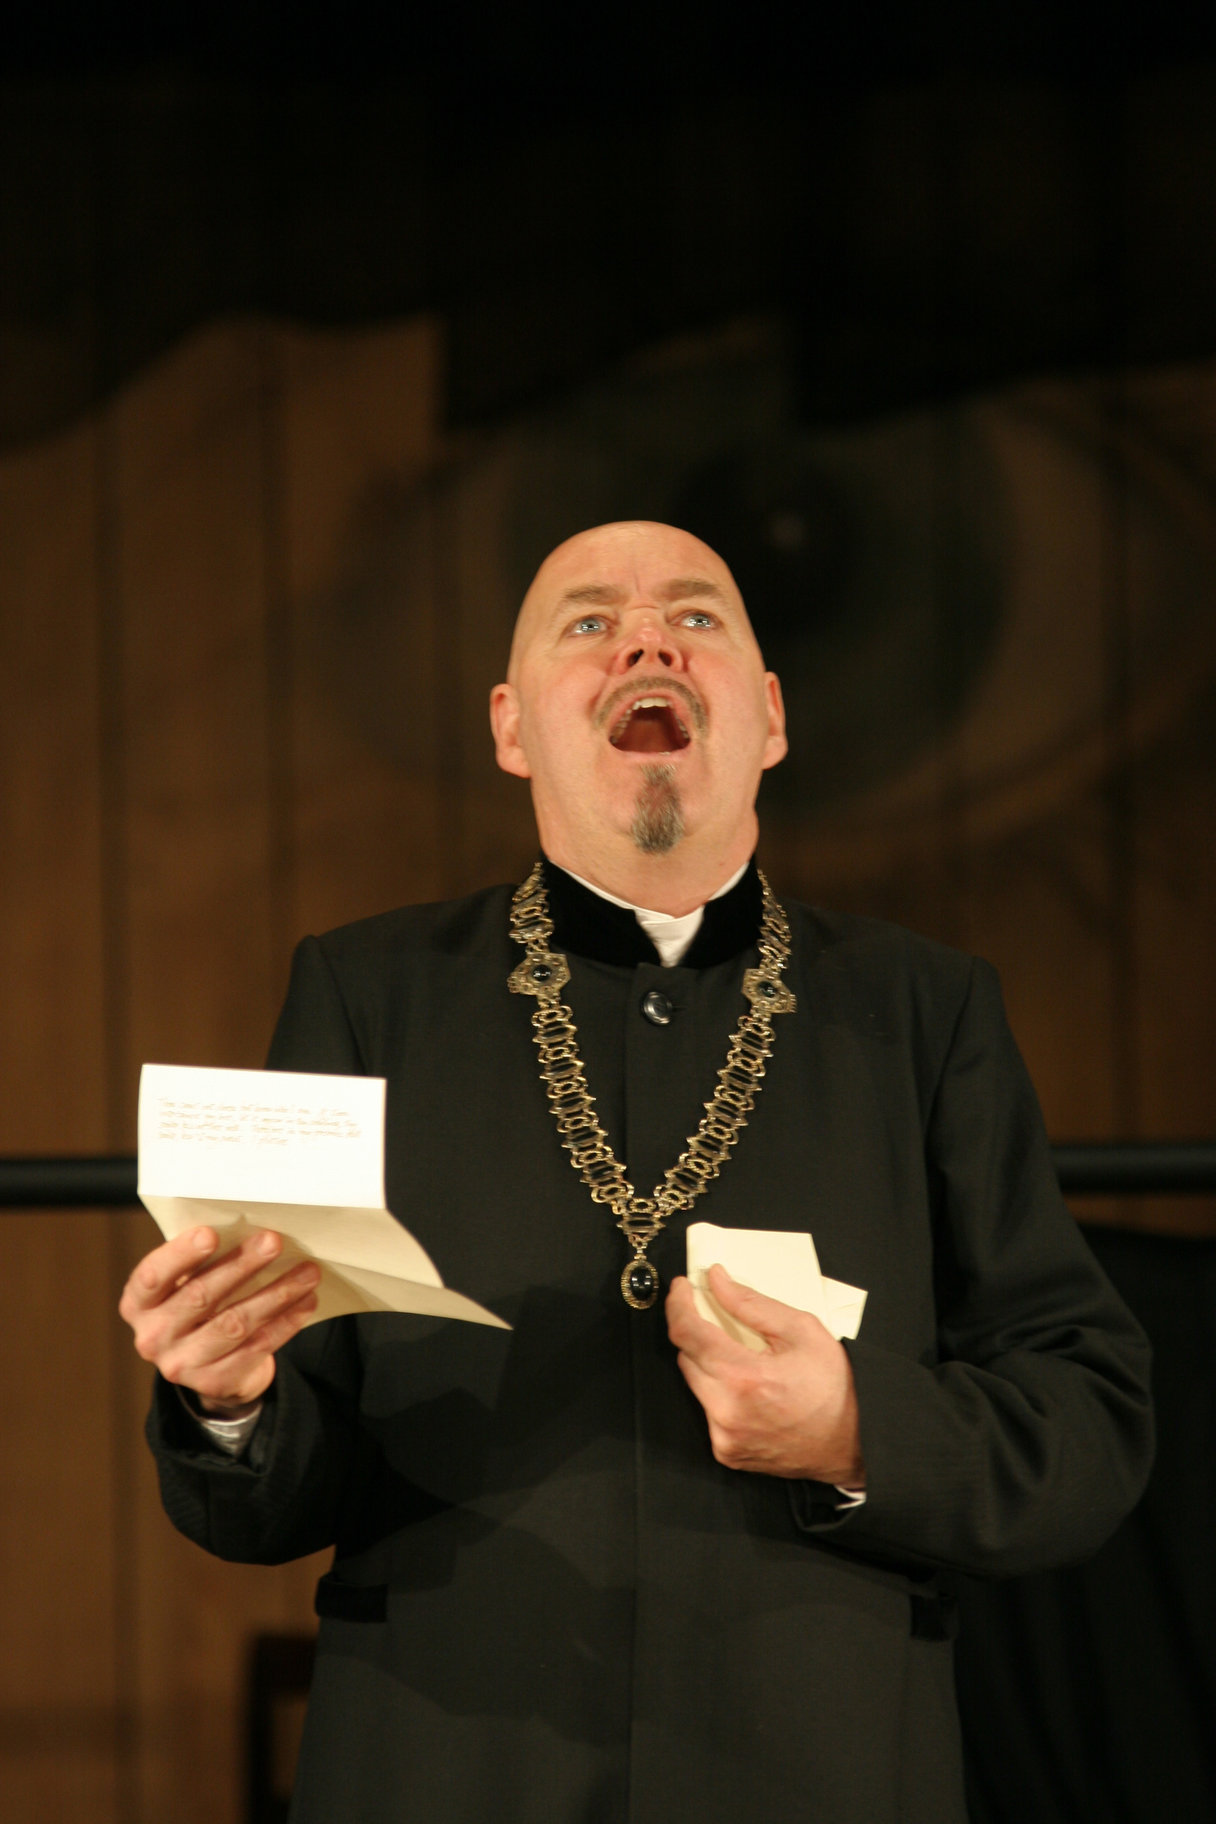 Malvolio looks upwards, with a letter in his right hand. He is mid-speech.